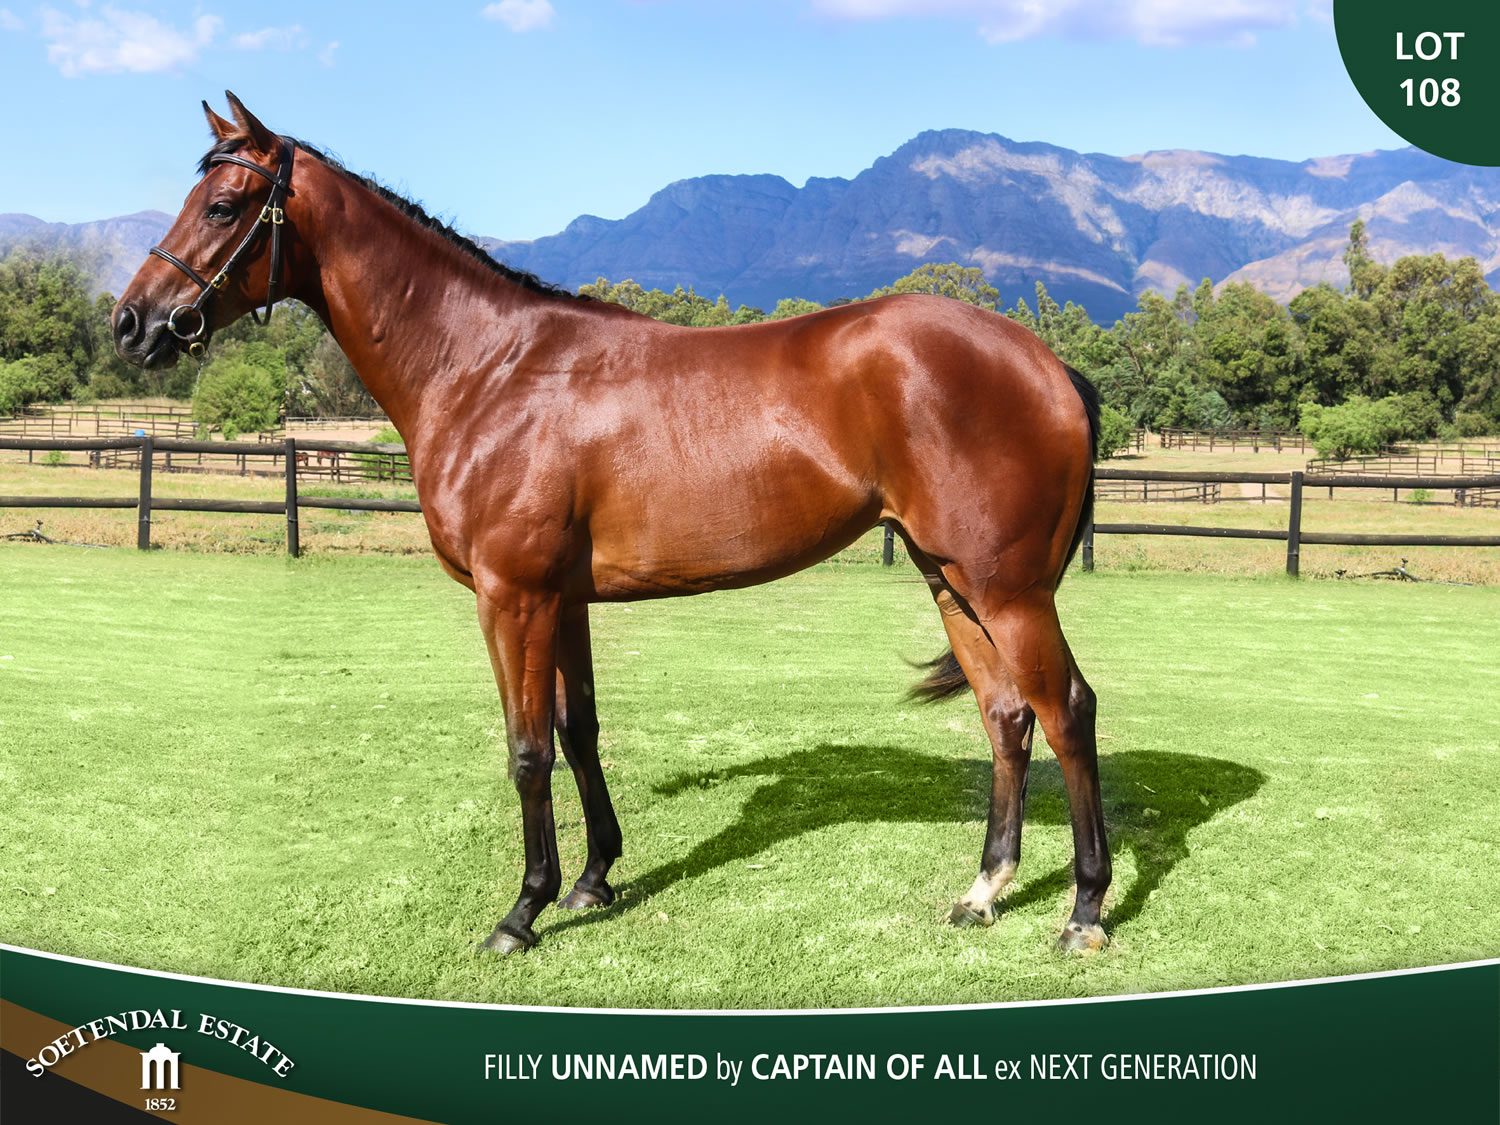 Lot-108-Filly-Unnamed-by-Captain-of-All-ex-Next-Generation